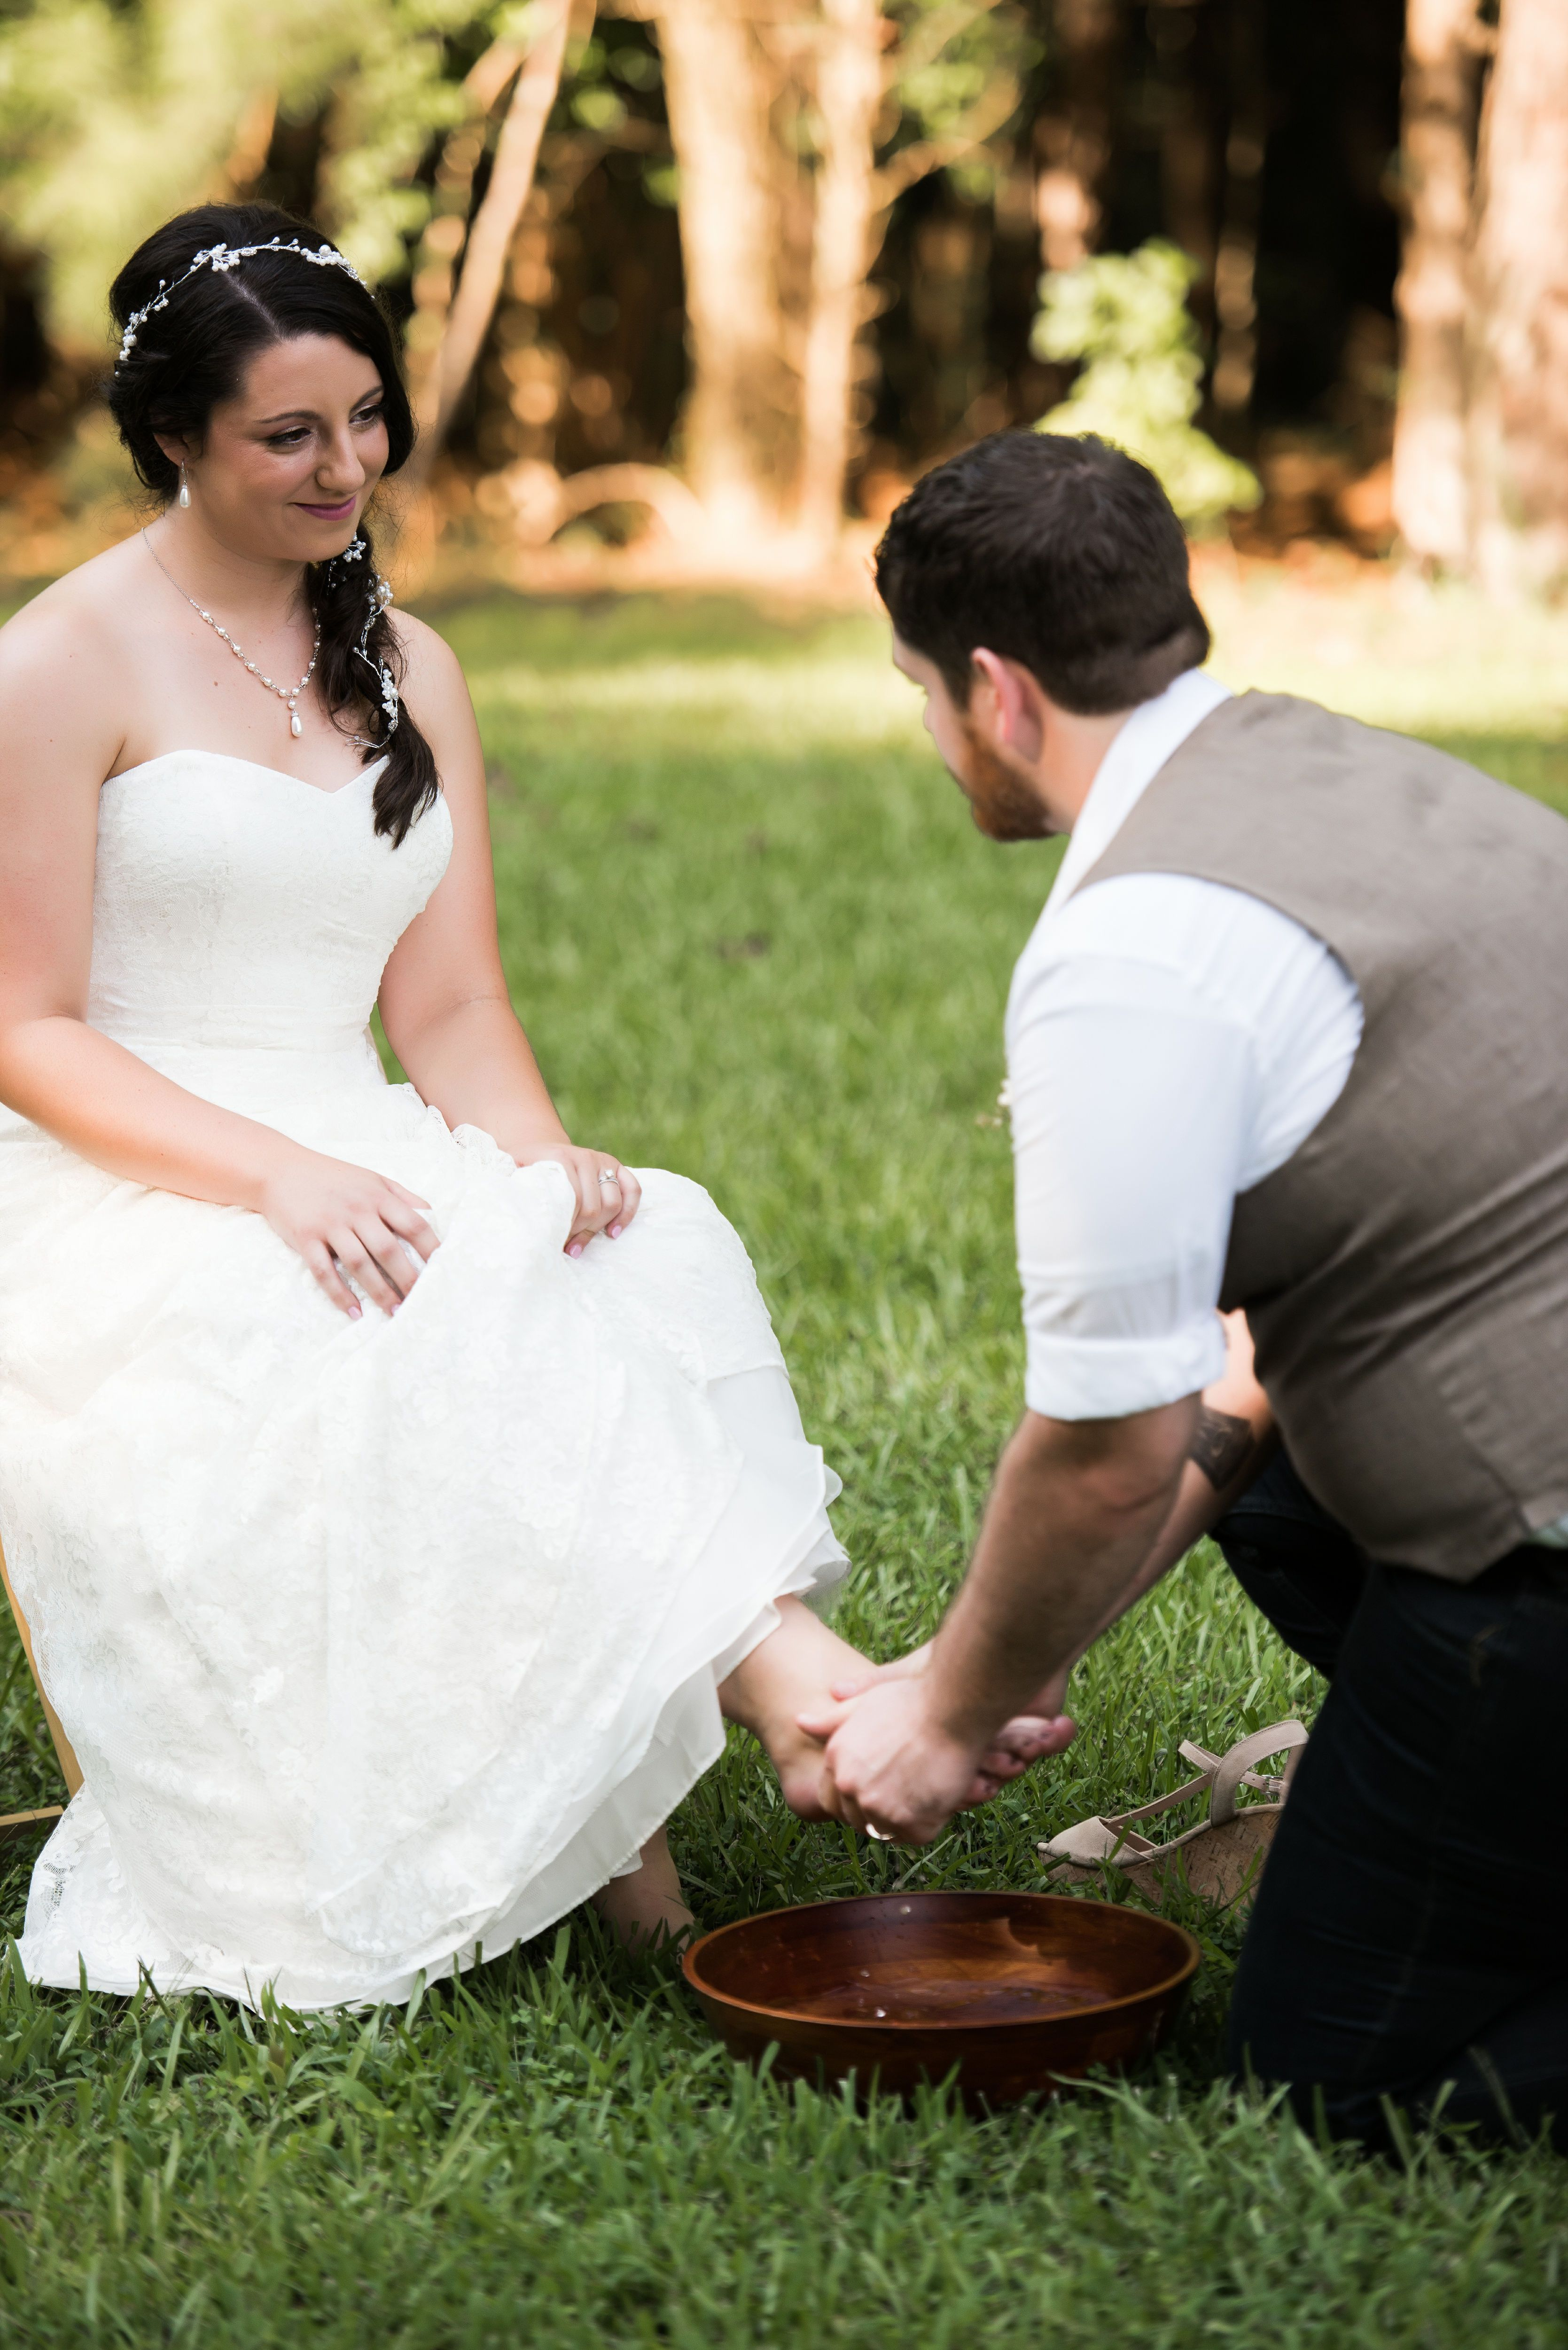 Foot Washing Commitment Ceremony For Christian Wedding Unityceremony Wedding Ceremony Unity Commitment Ceremony Hindu Wedding Ceremony